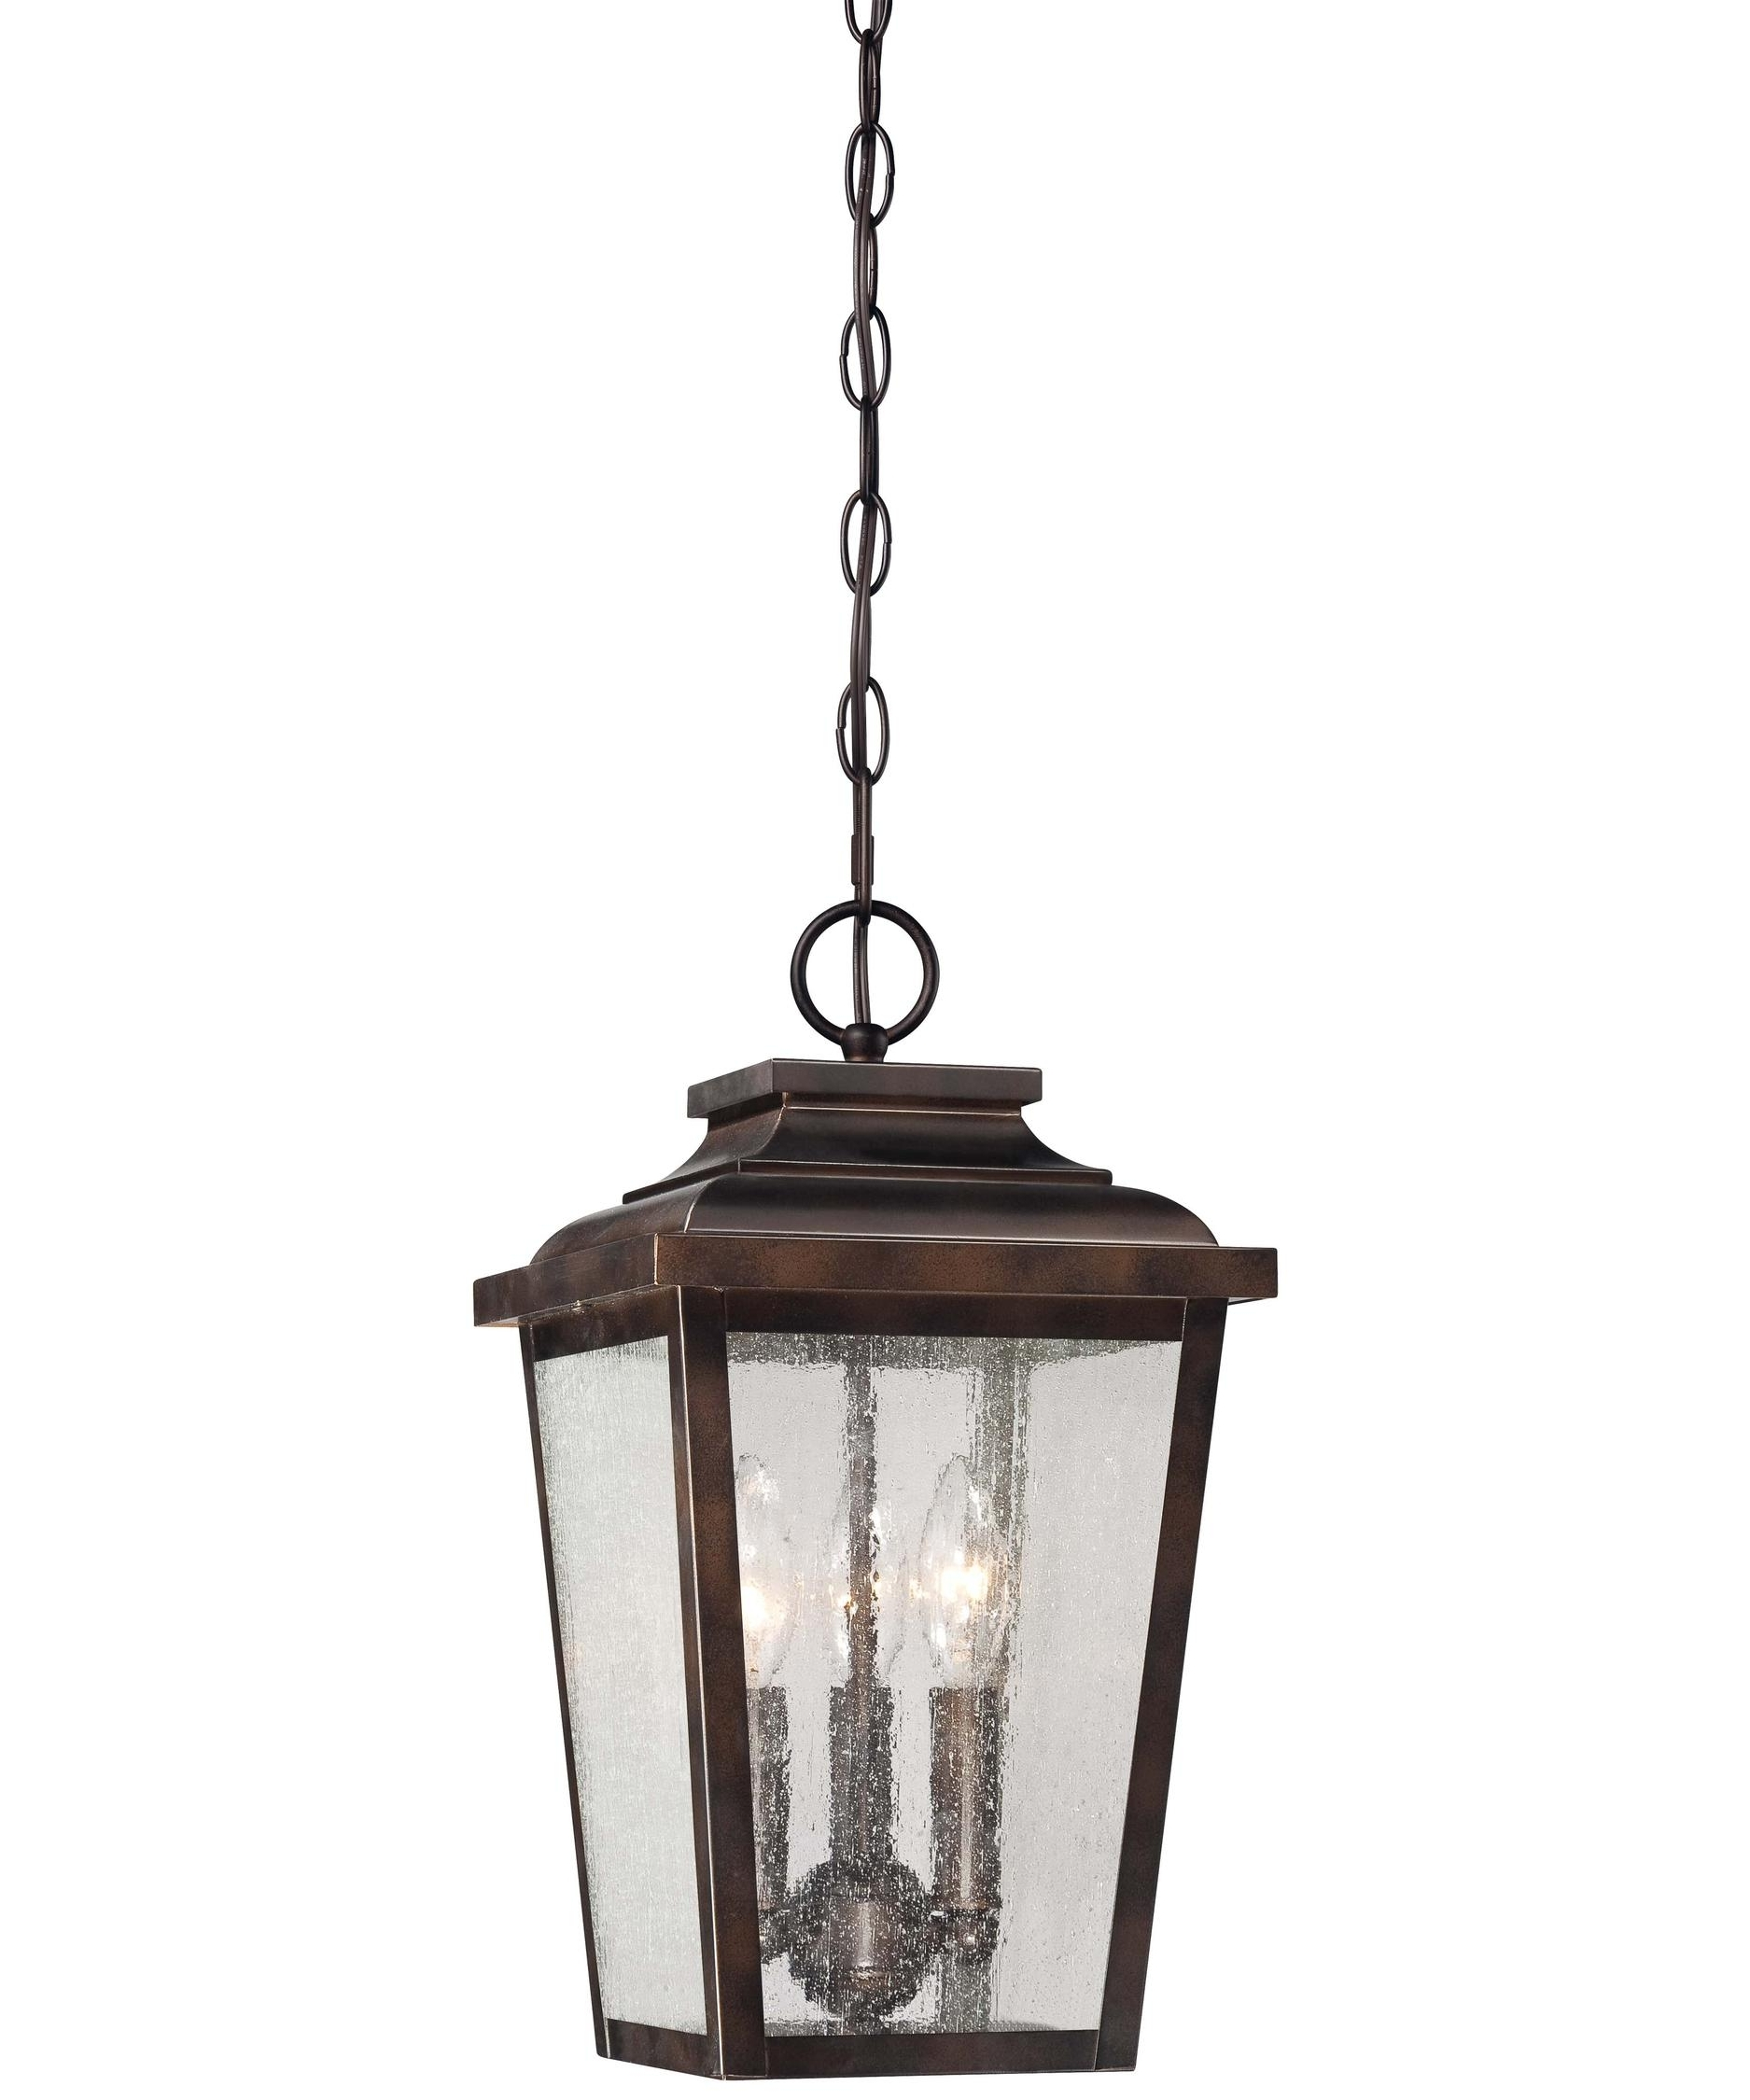 Famous Minka Lavery 72174 Irvington Manor 9 Inch Wide 3 Light Outdoor With Regard To Outdoor Hanging Lanterns At Lowes (View 2 of 20)